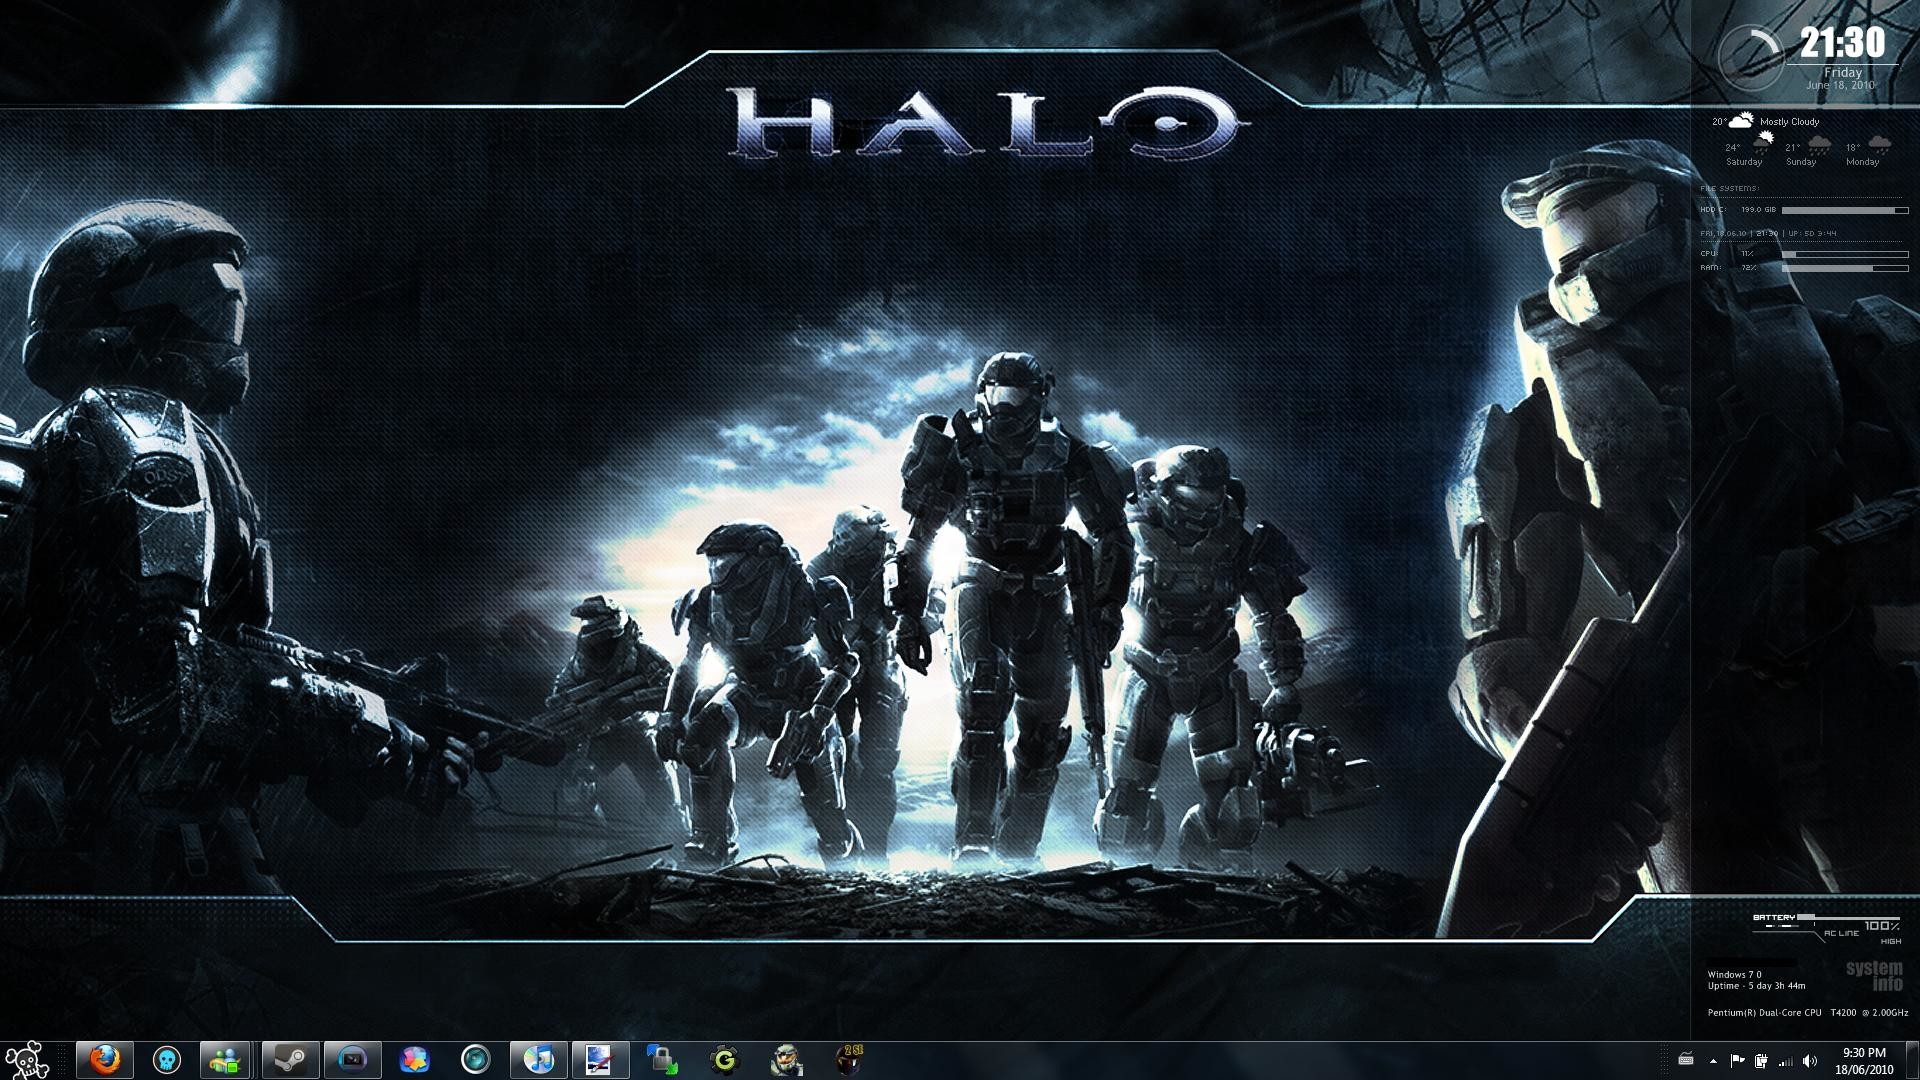 1920x1080 Awesome Halo Wallpapers - Wallpaper Cave